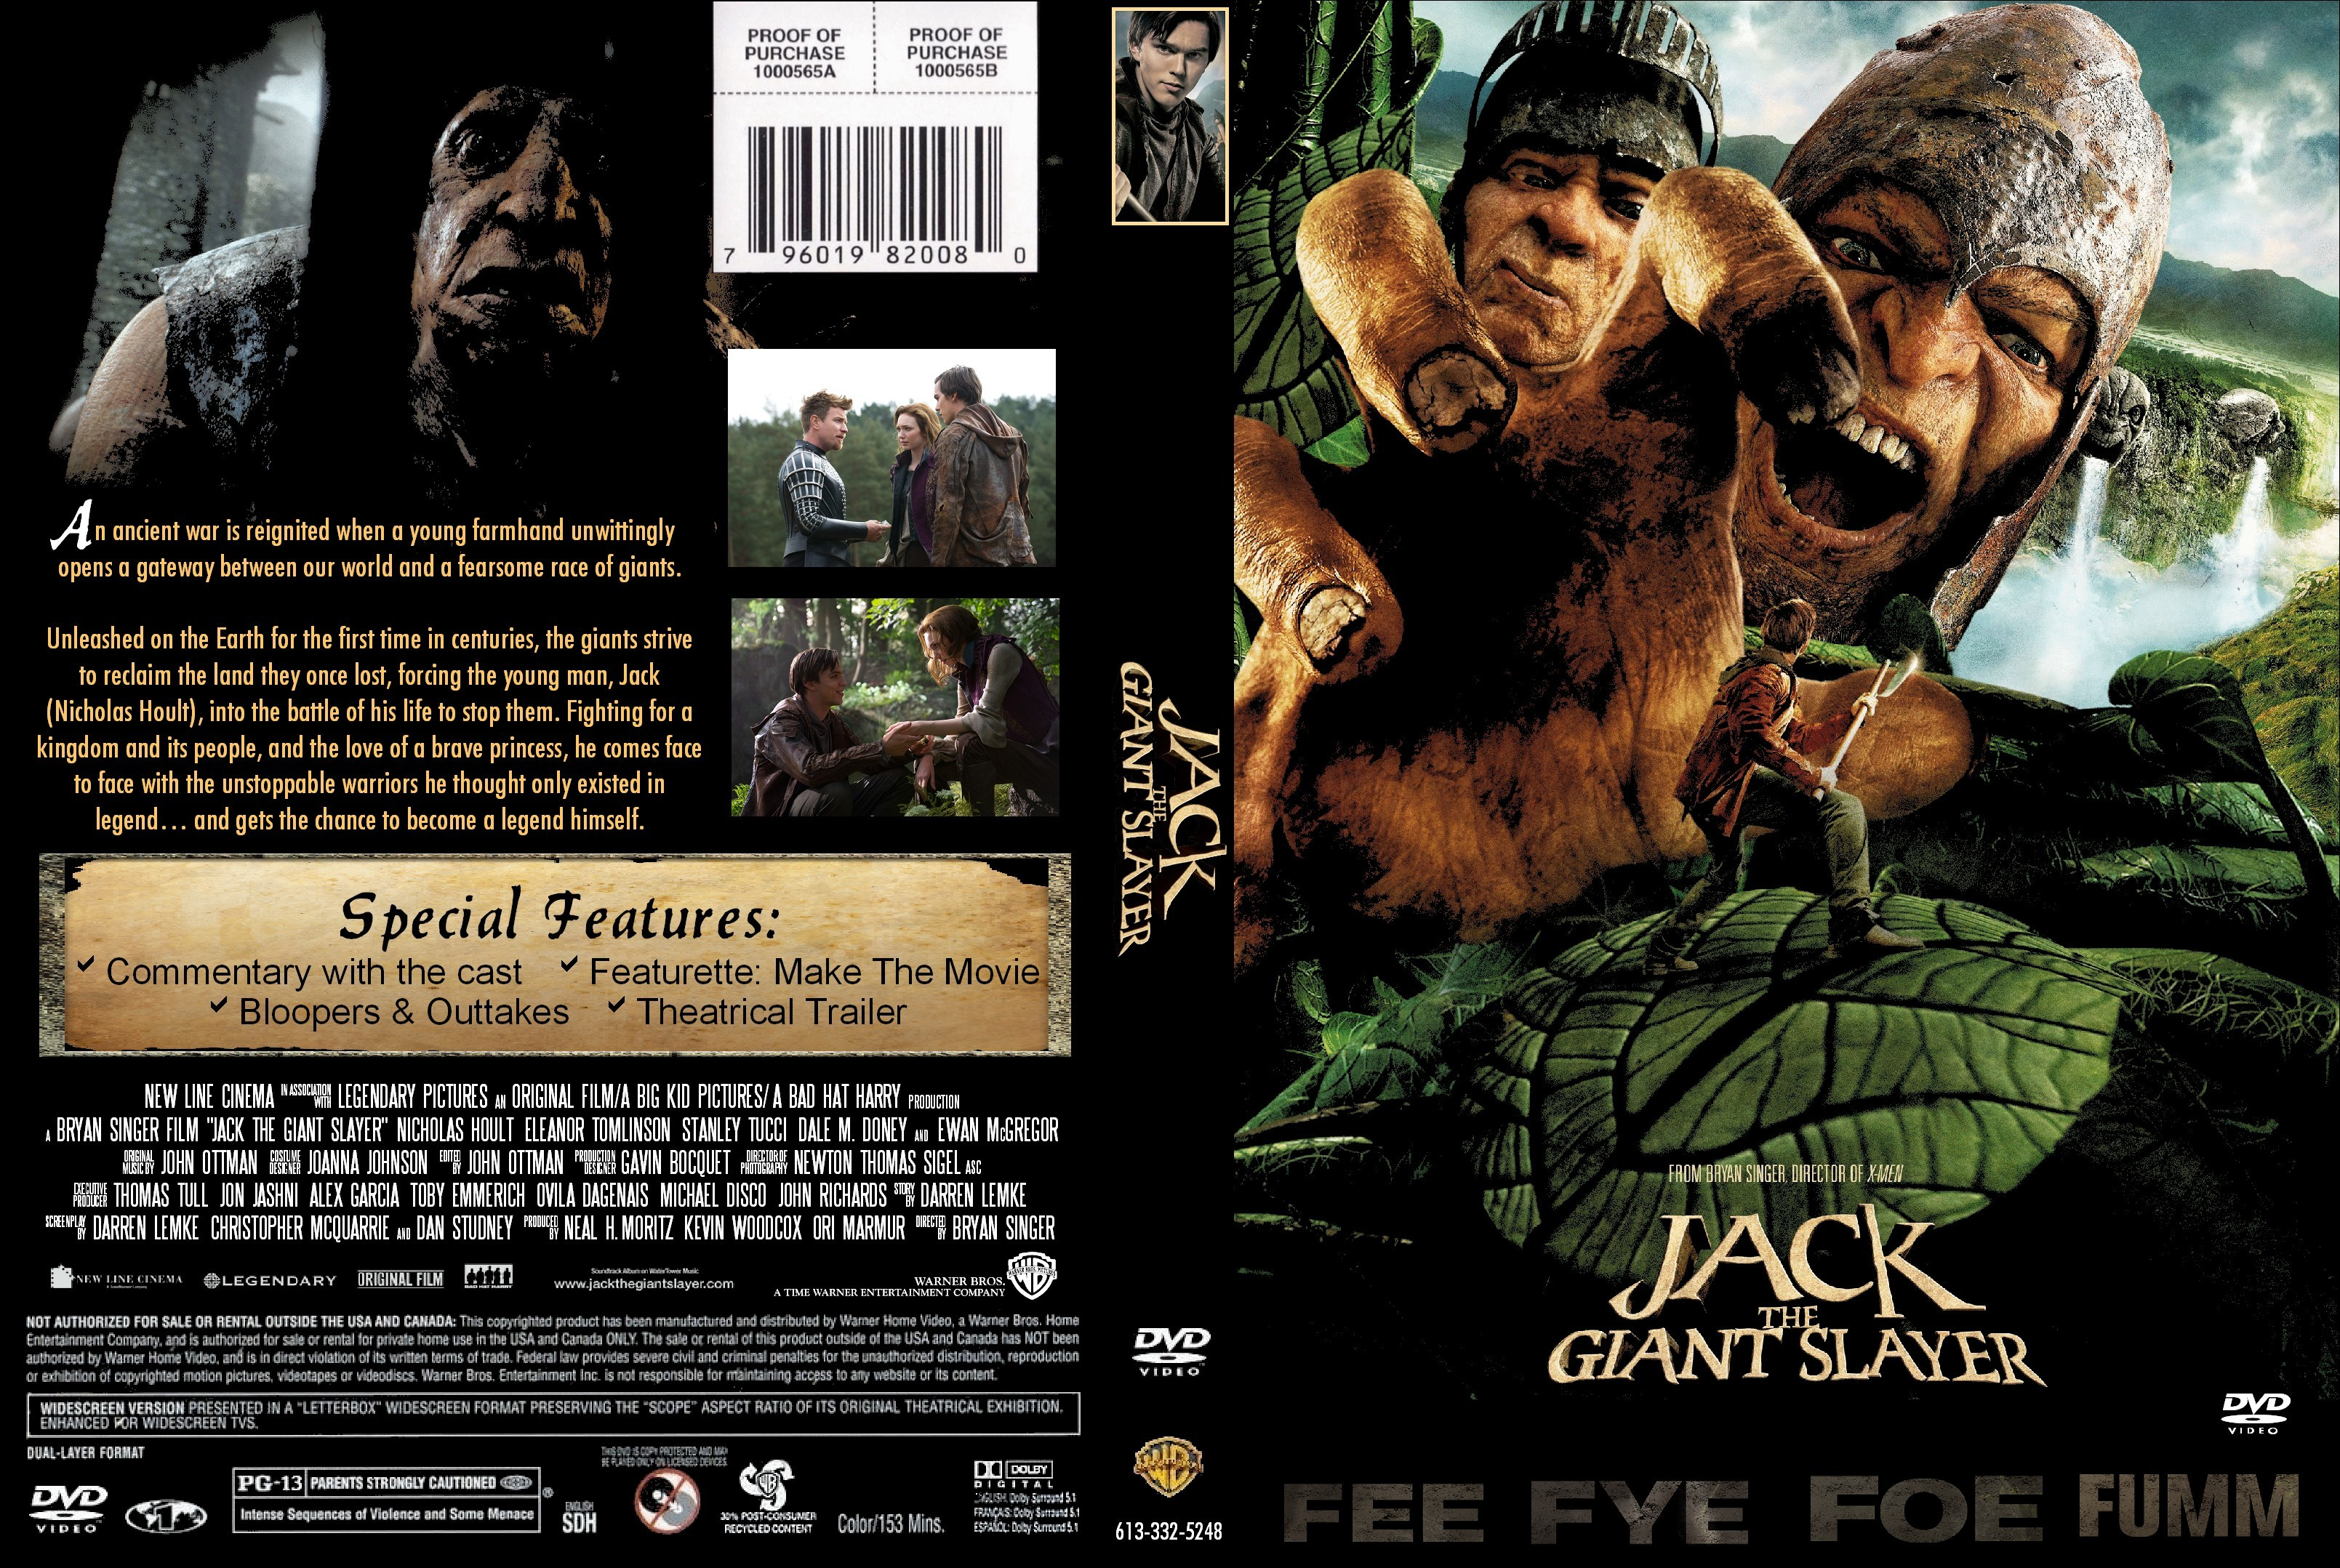 Covers Box Sk Jack The Giant Slayer 2013 High Quality Dvd Blueray Movie